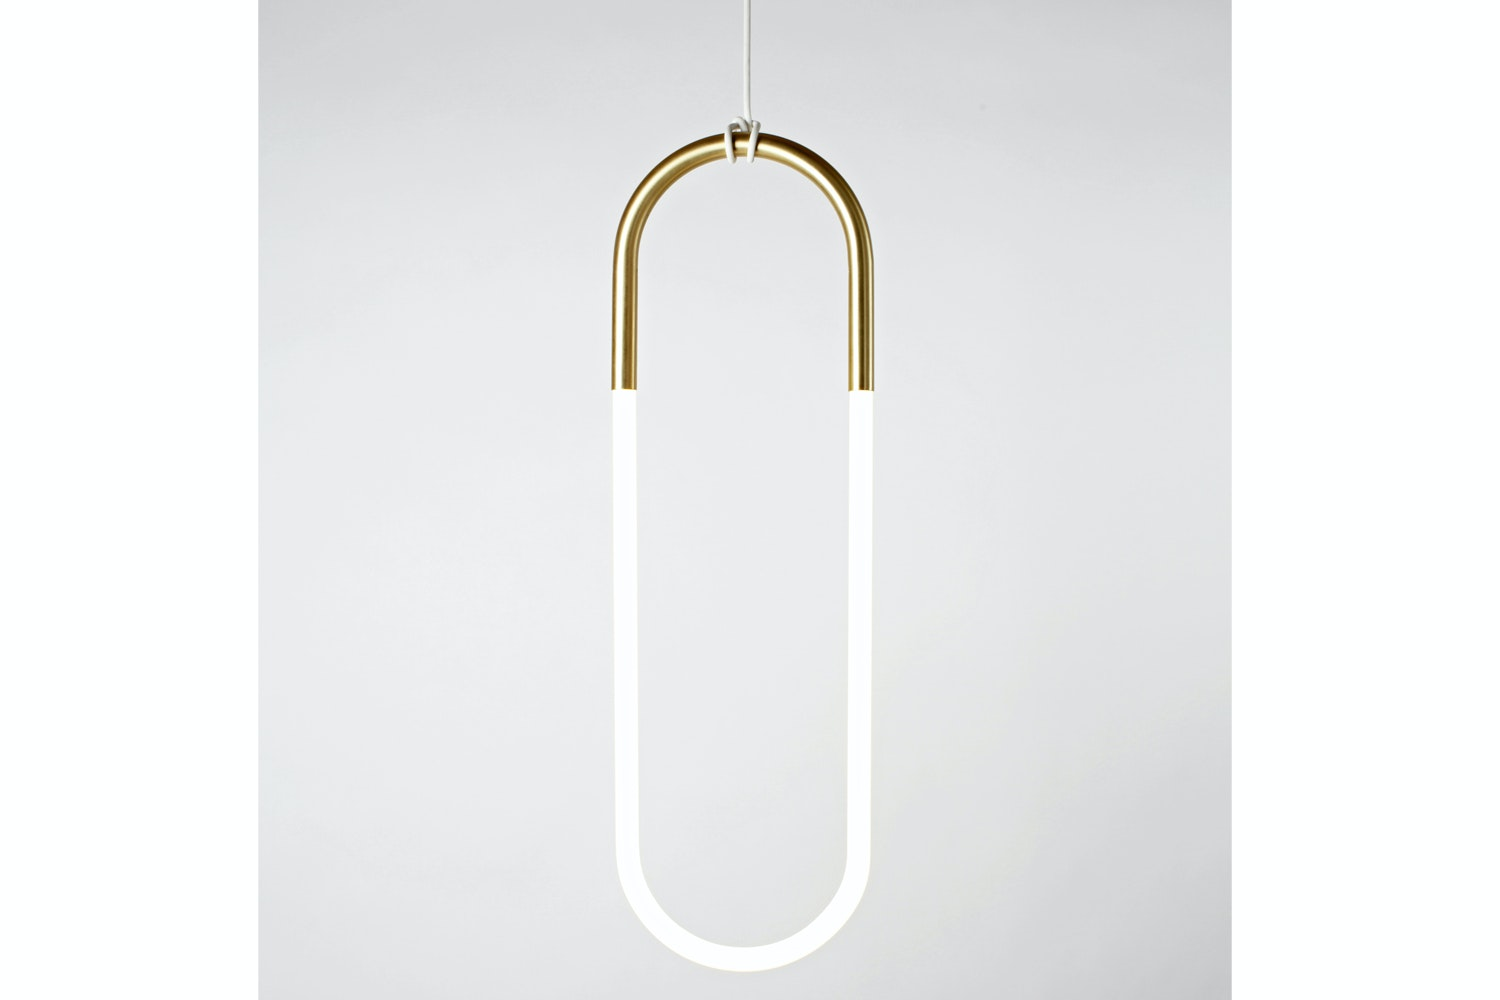 Rudi Single Loop Large by Lukas Peet for Roll & Hill